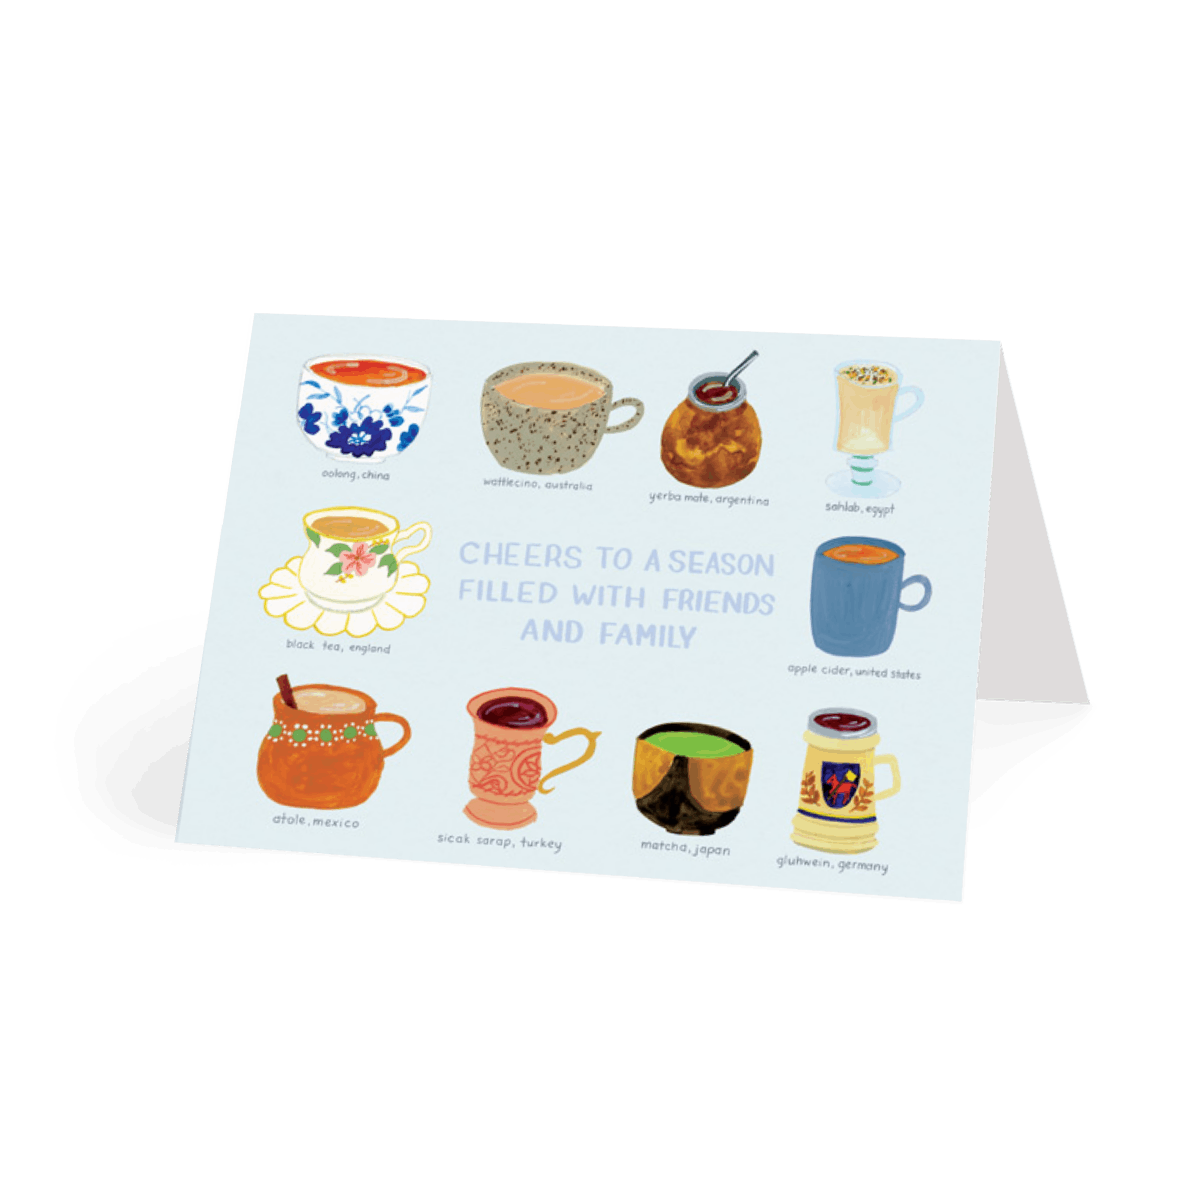 Https%3a%2f%2fwww.papier.com%2fproduct image%2f27538%2f14%2fhot drinks of the world 6867 avant 1504620018.png?ixlib=rb 1.1